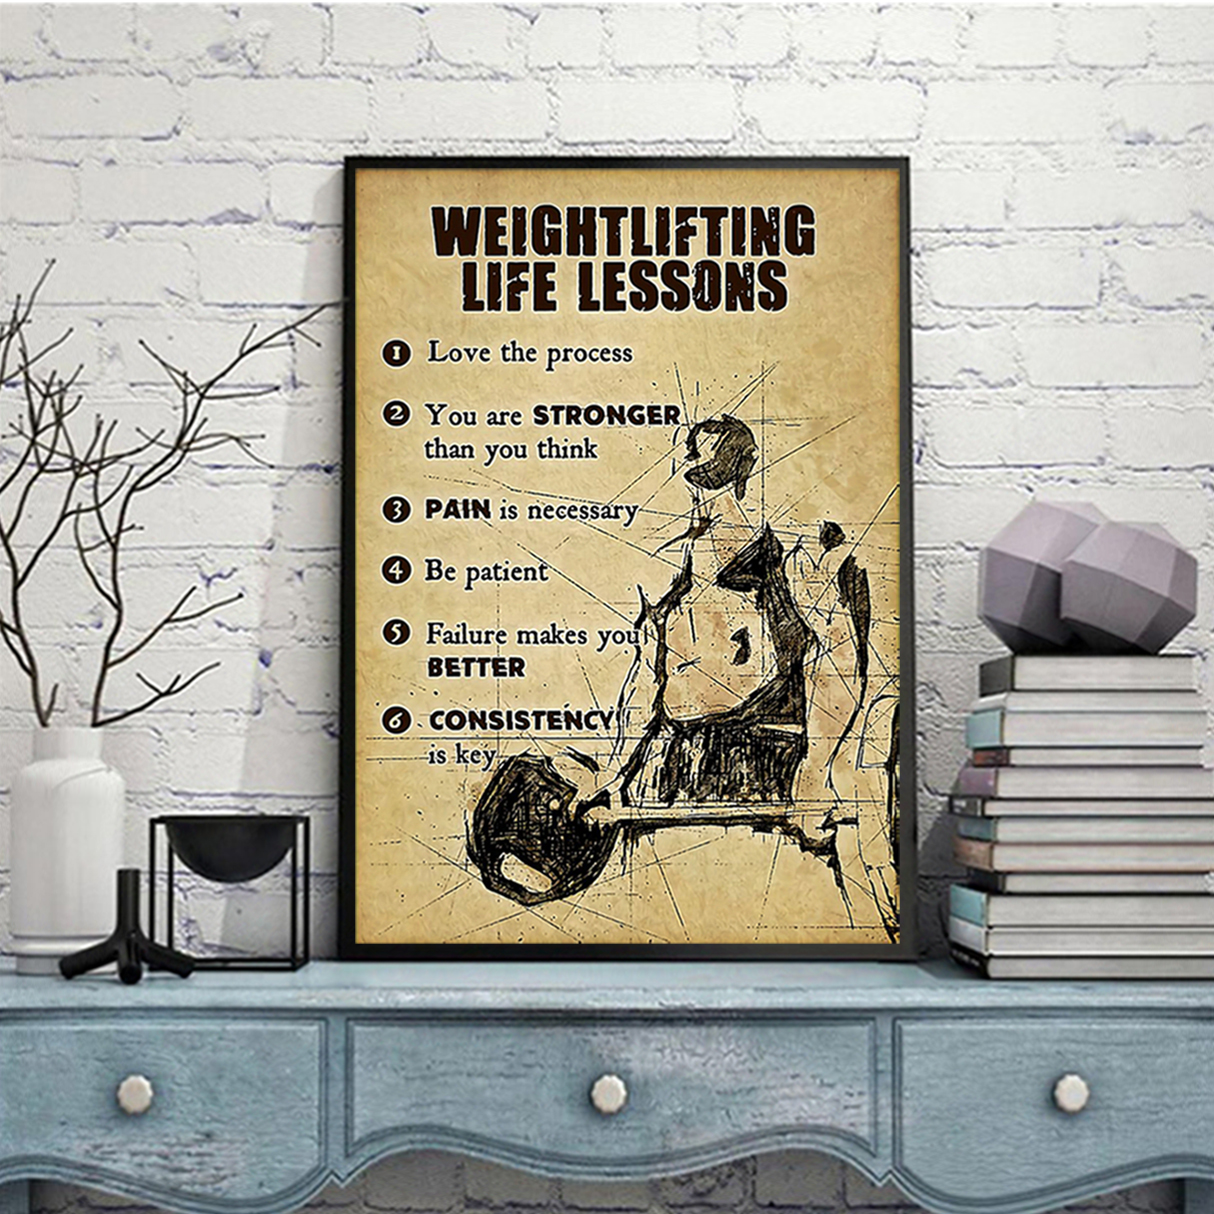 Fitness weightlifting life lessons poster A1